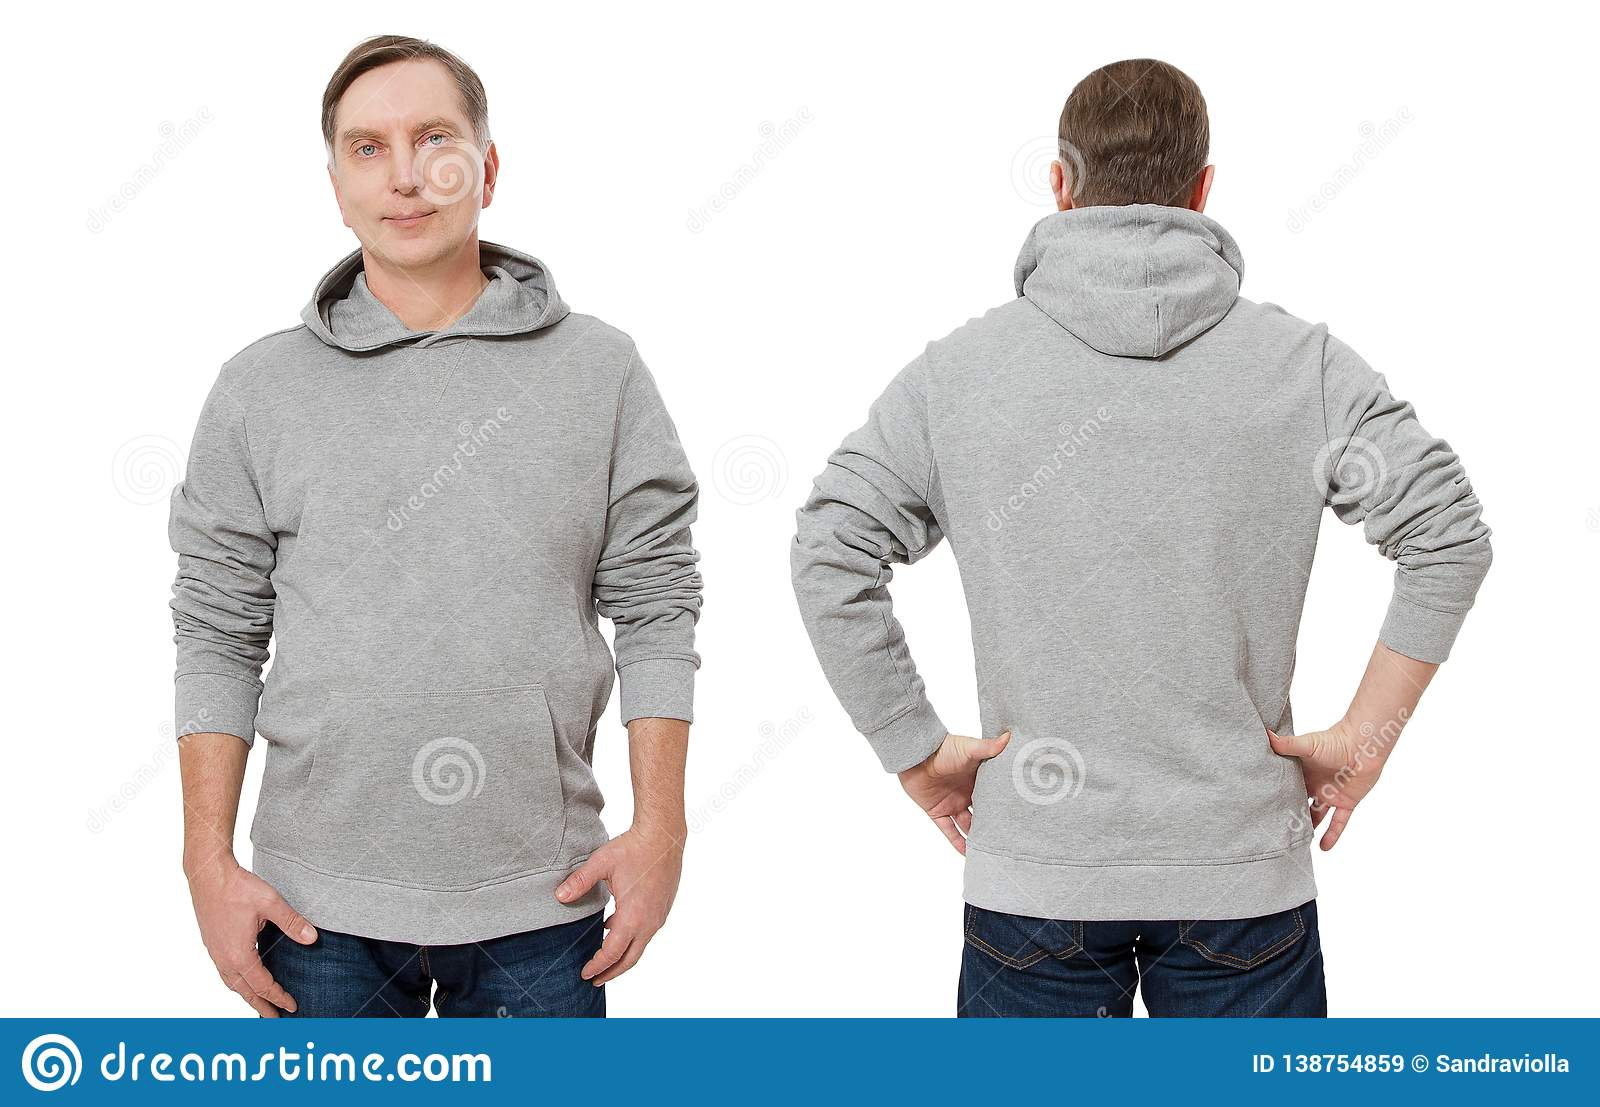 Man in gray sweatshirt template isolated. Male sweatshirts set with mockup and copy space. Sweat shirt design front back